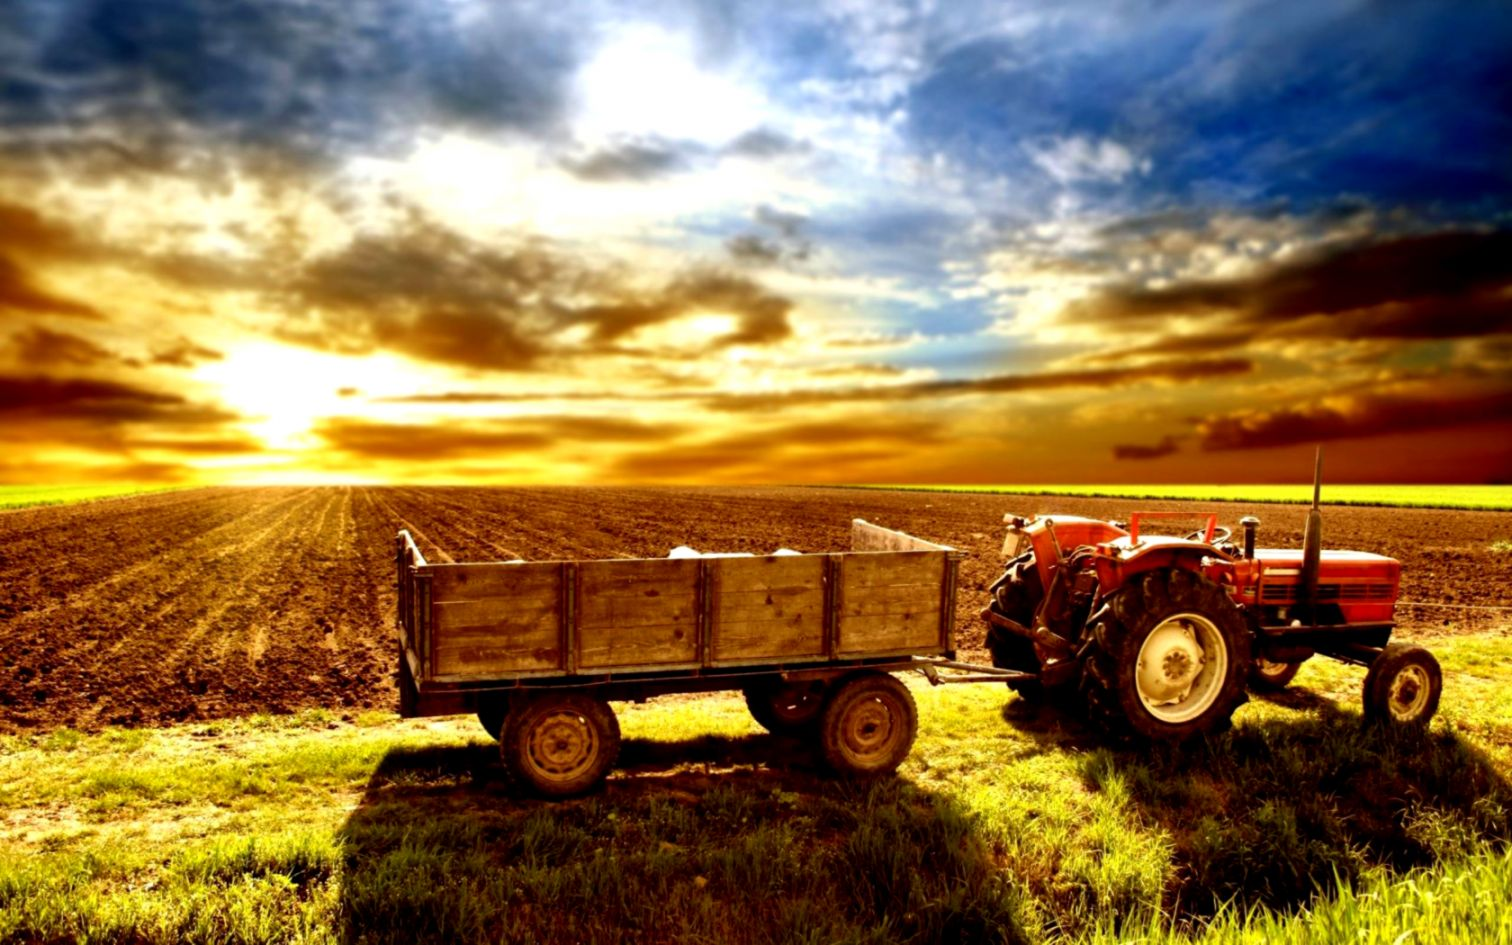 High Definition Wallpaper Of A Tractor In A Farm PaperPull